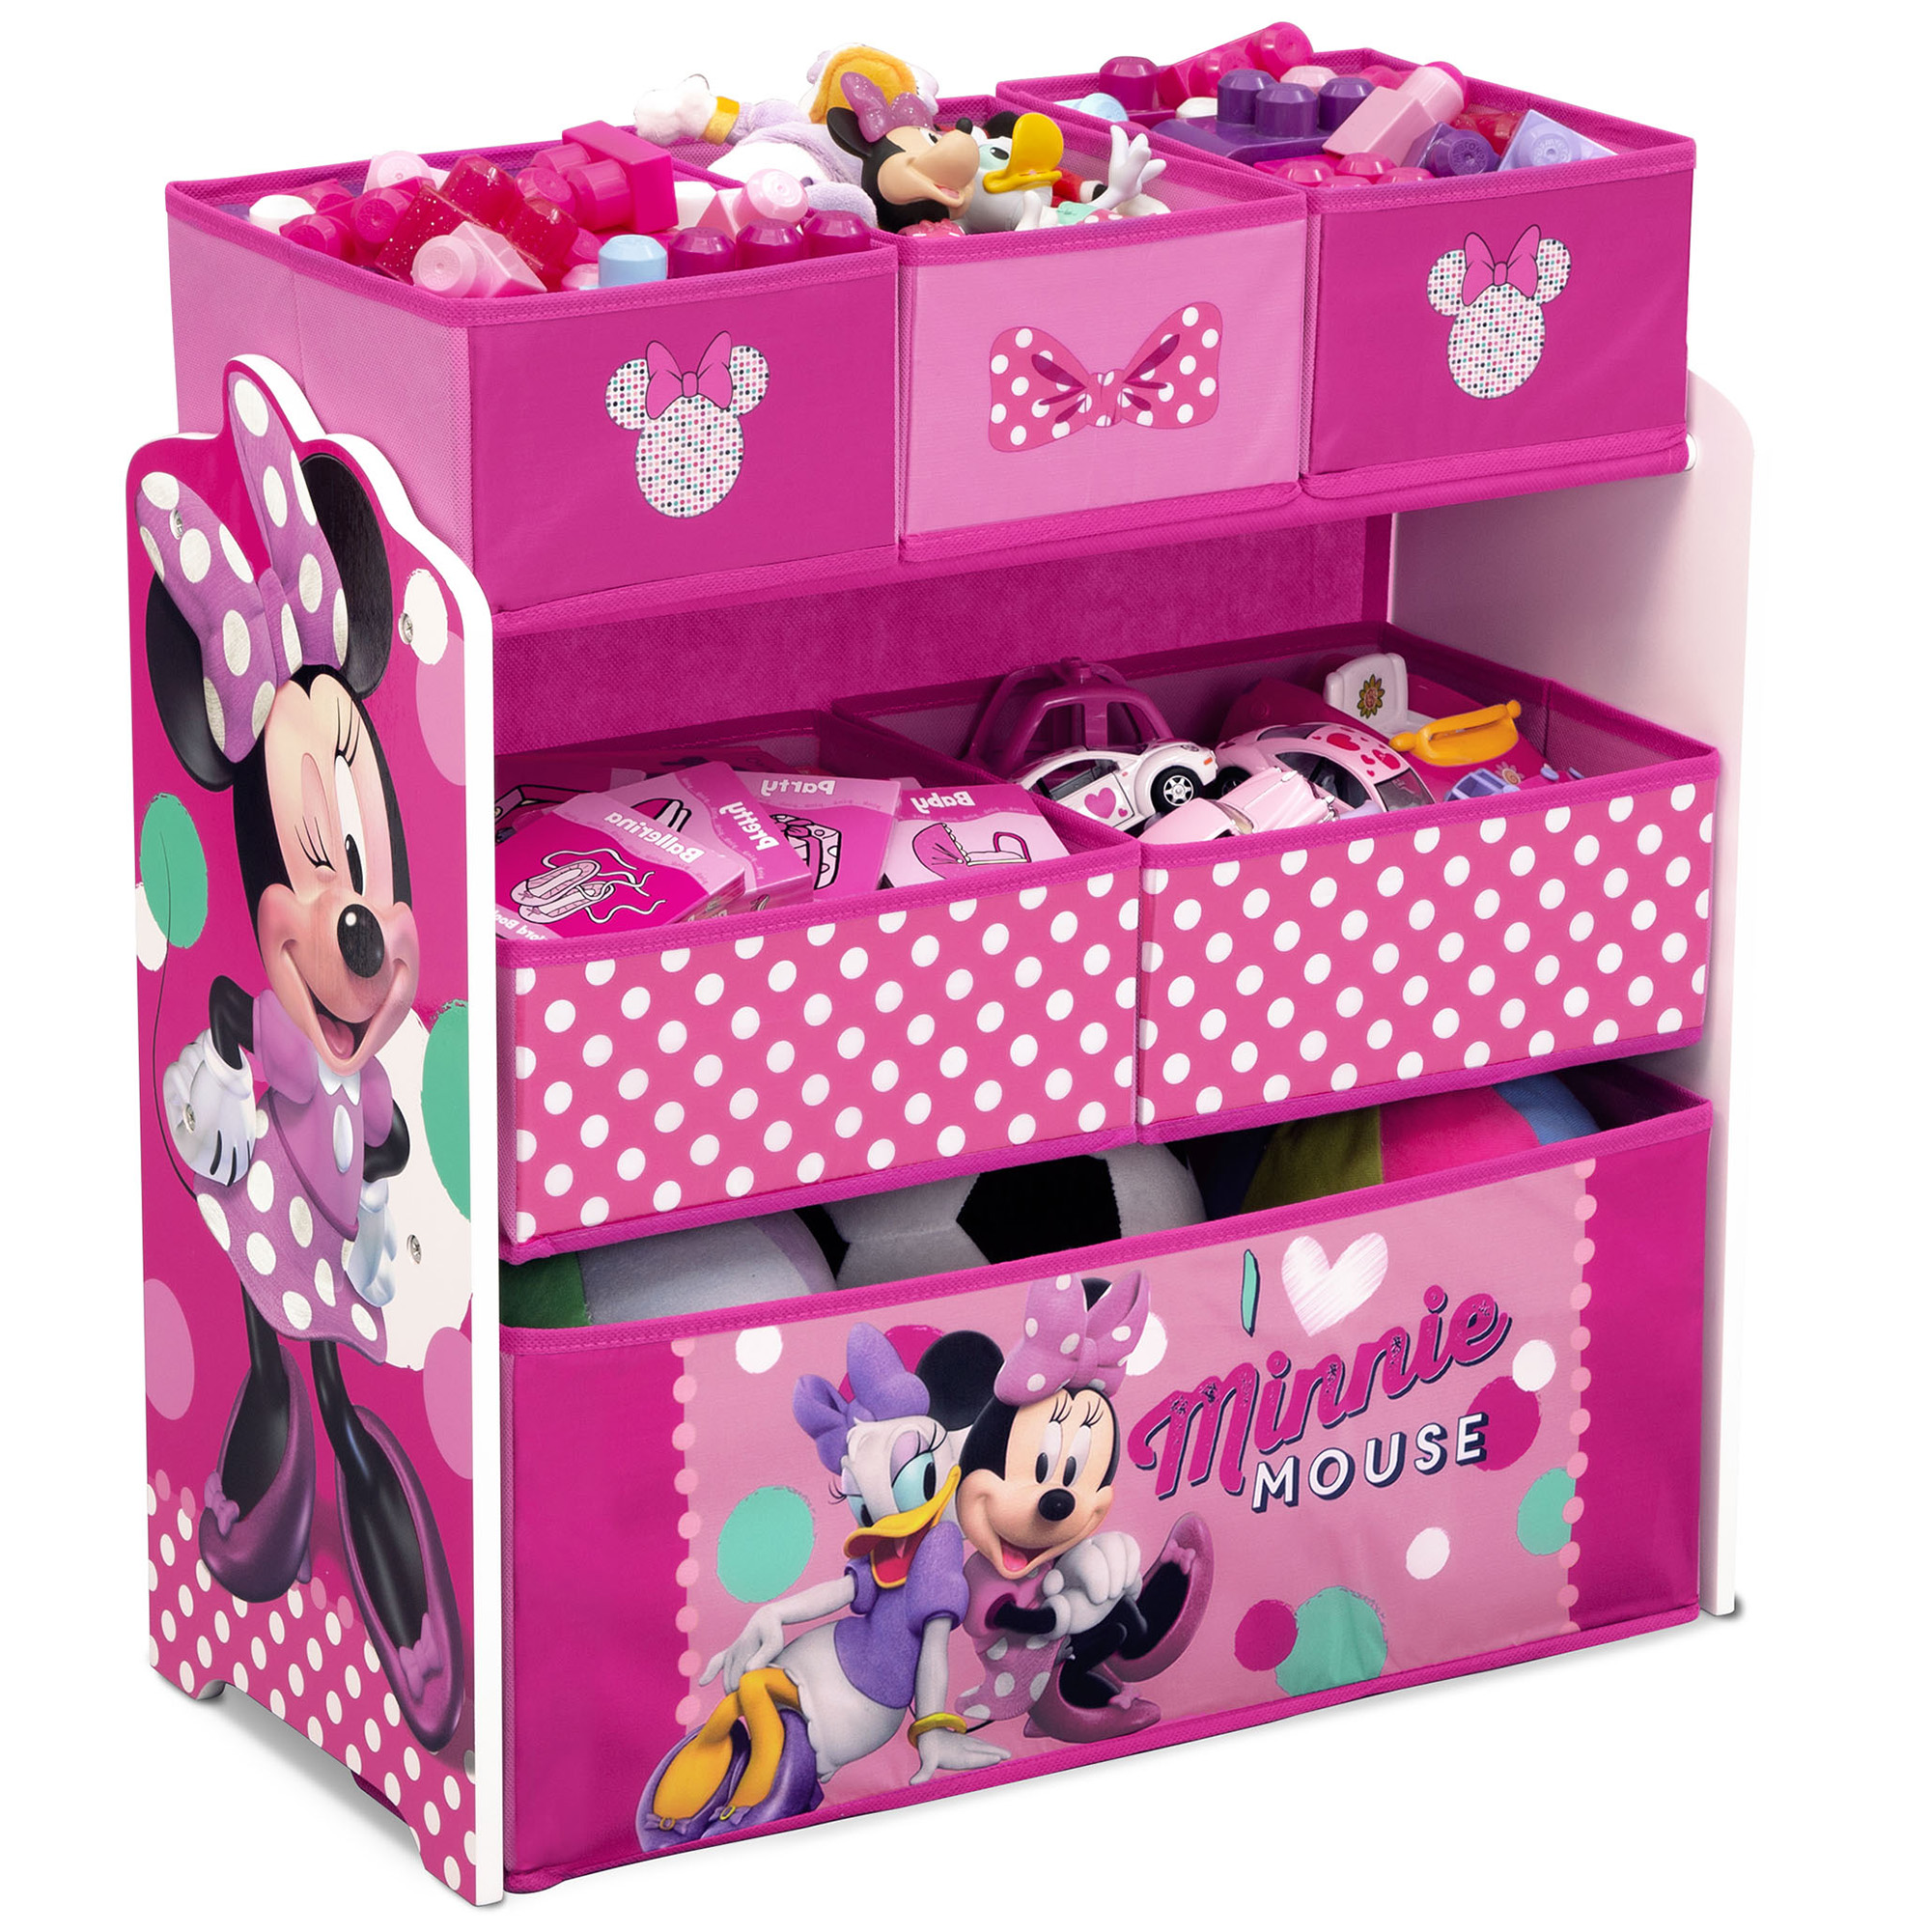 Magnificent Disney Minnie Mouse 5 Piece Toddler Bedroom Set By Delta Pdpeps Interior Chair Design Pdpepsorg